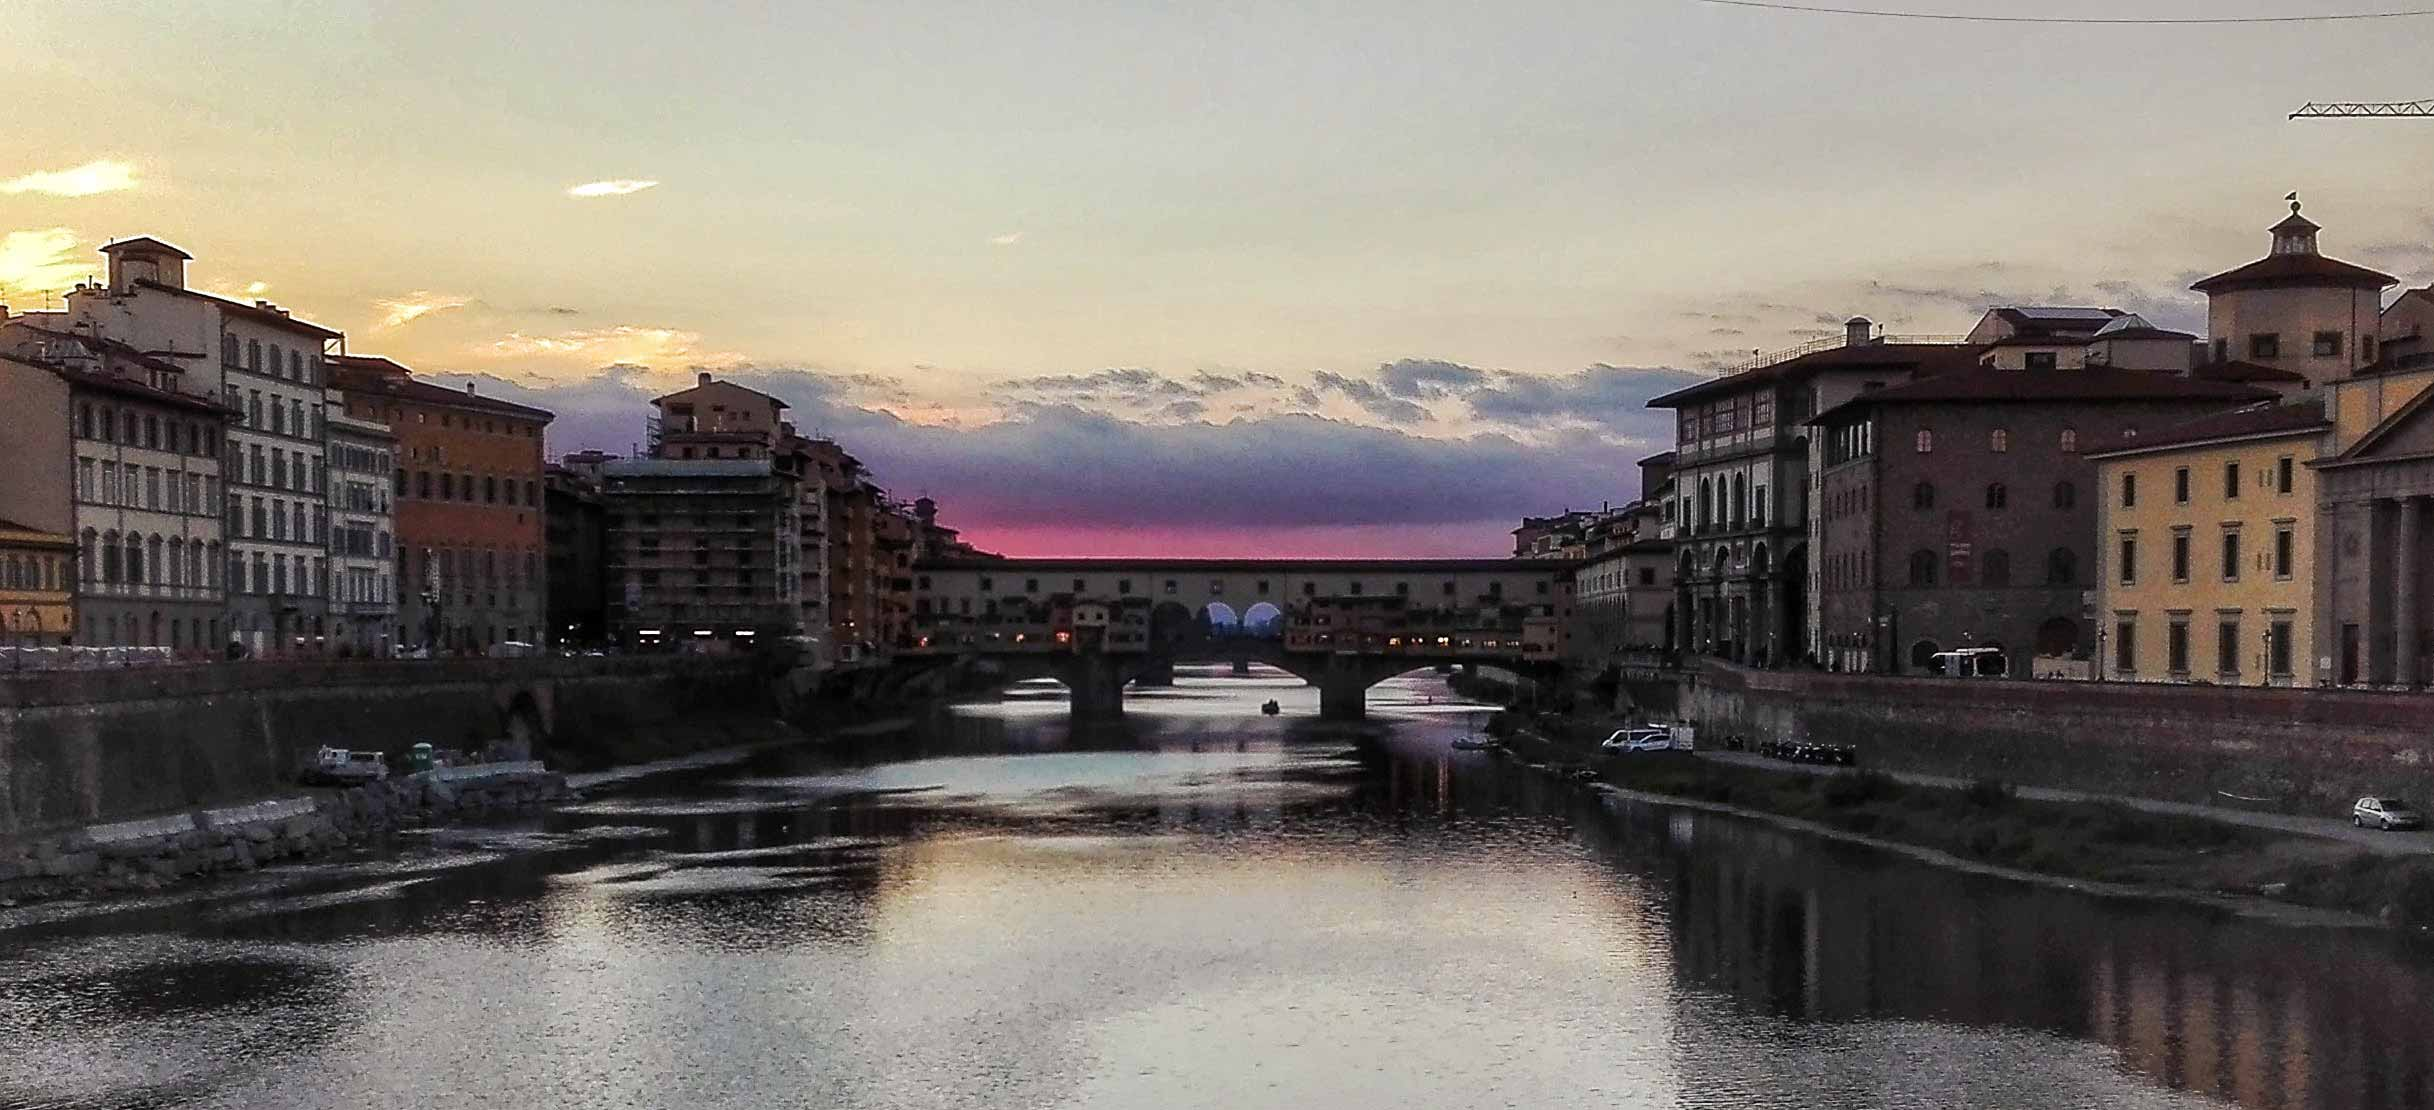 firenze-weekend-romantico-idee